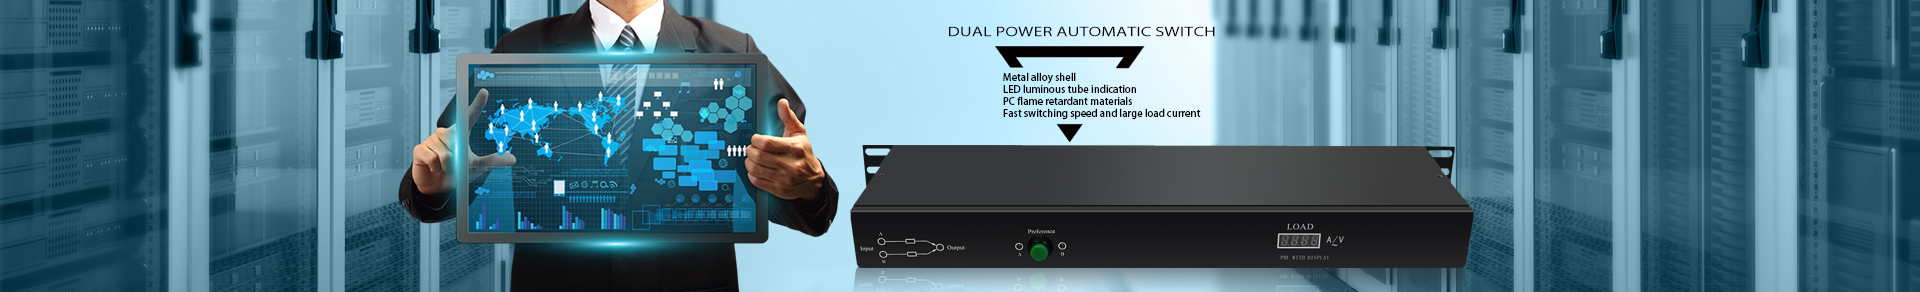 Dual Power Automatic Switch